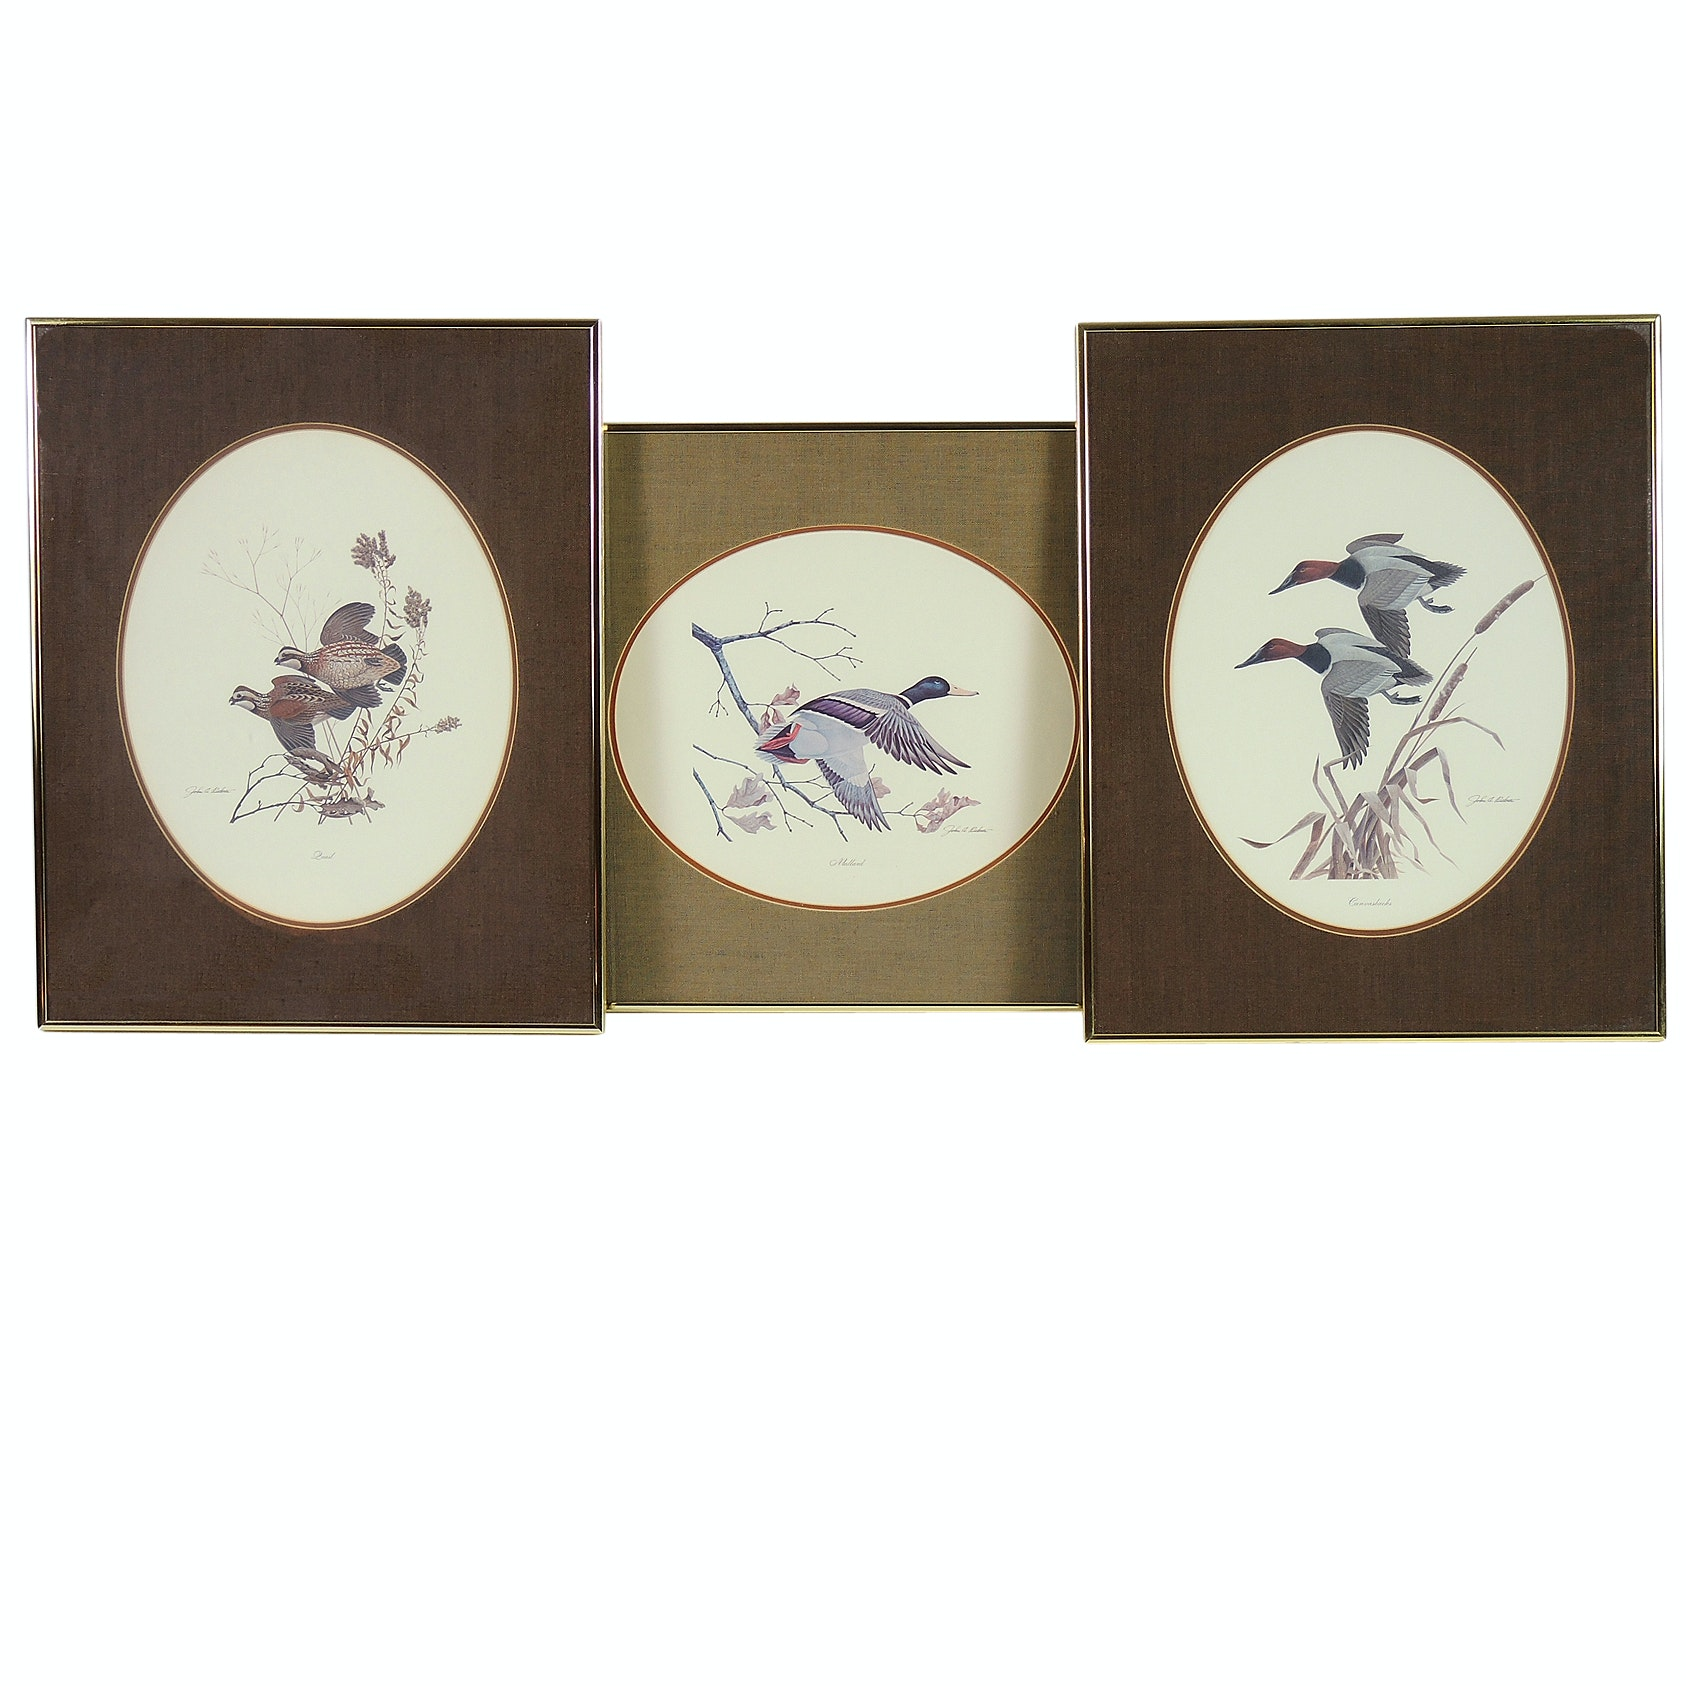 John A. Ruthven Offset Lithograph Prints of Game Birds